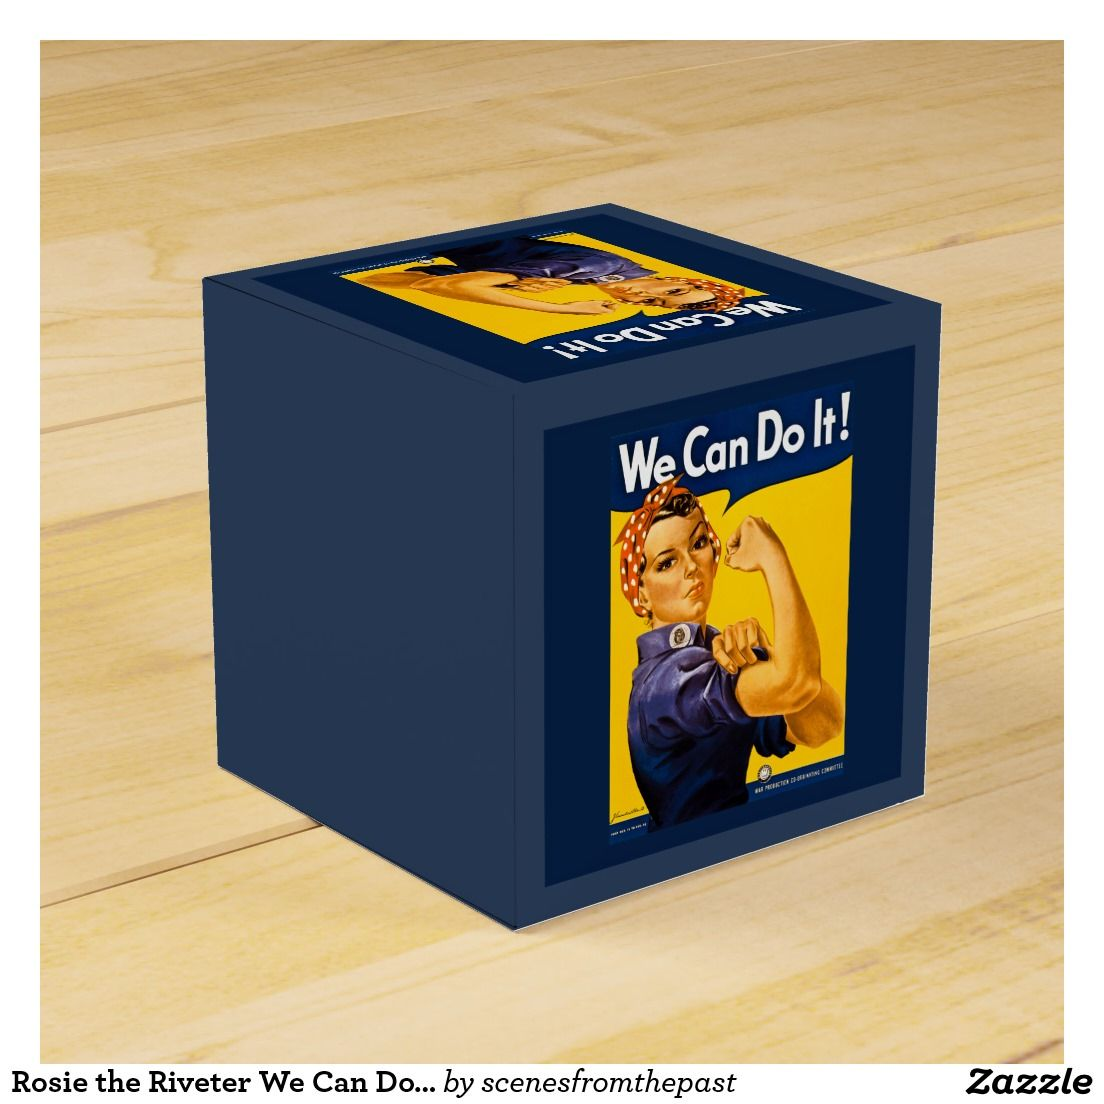 Rosie the Riveter We Can Do It Vintage Classic Favor Boxes